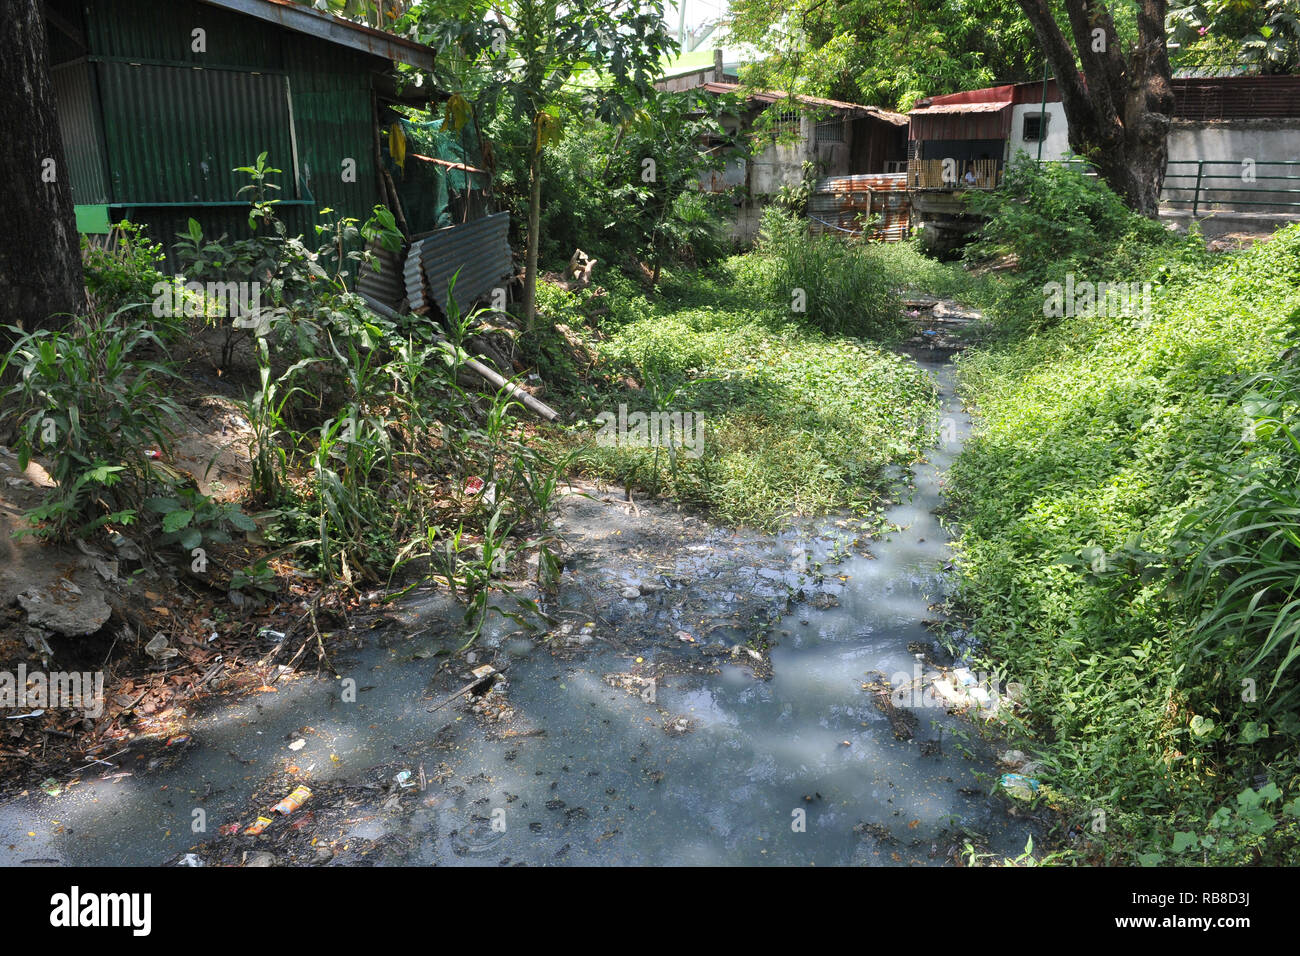 Pollution of a river in the Philippines - Stock Image